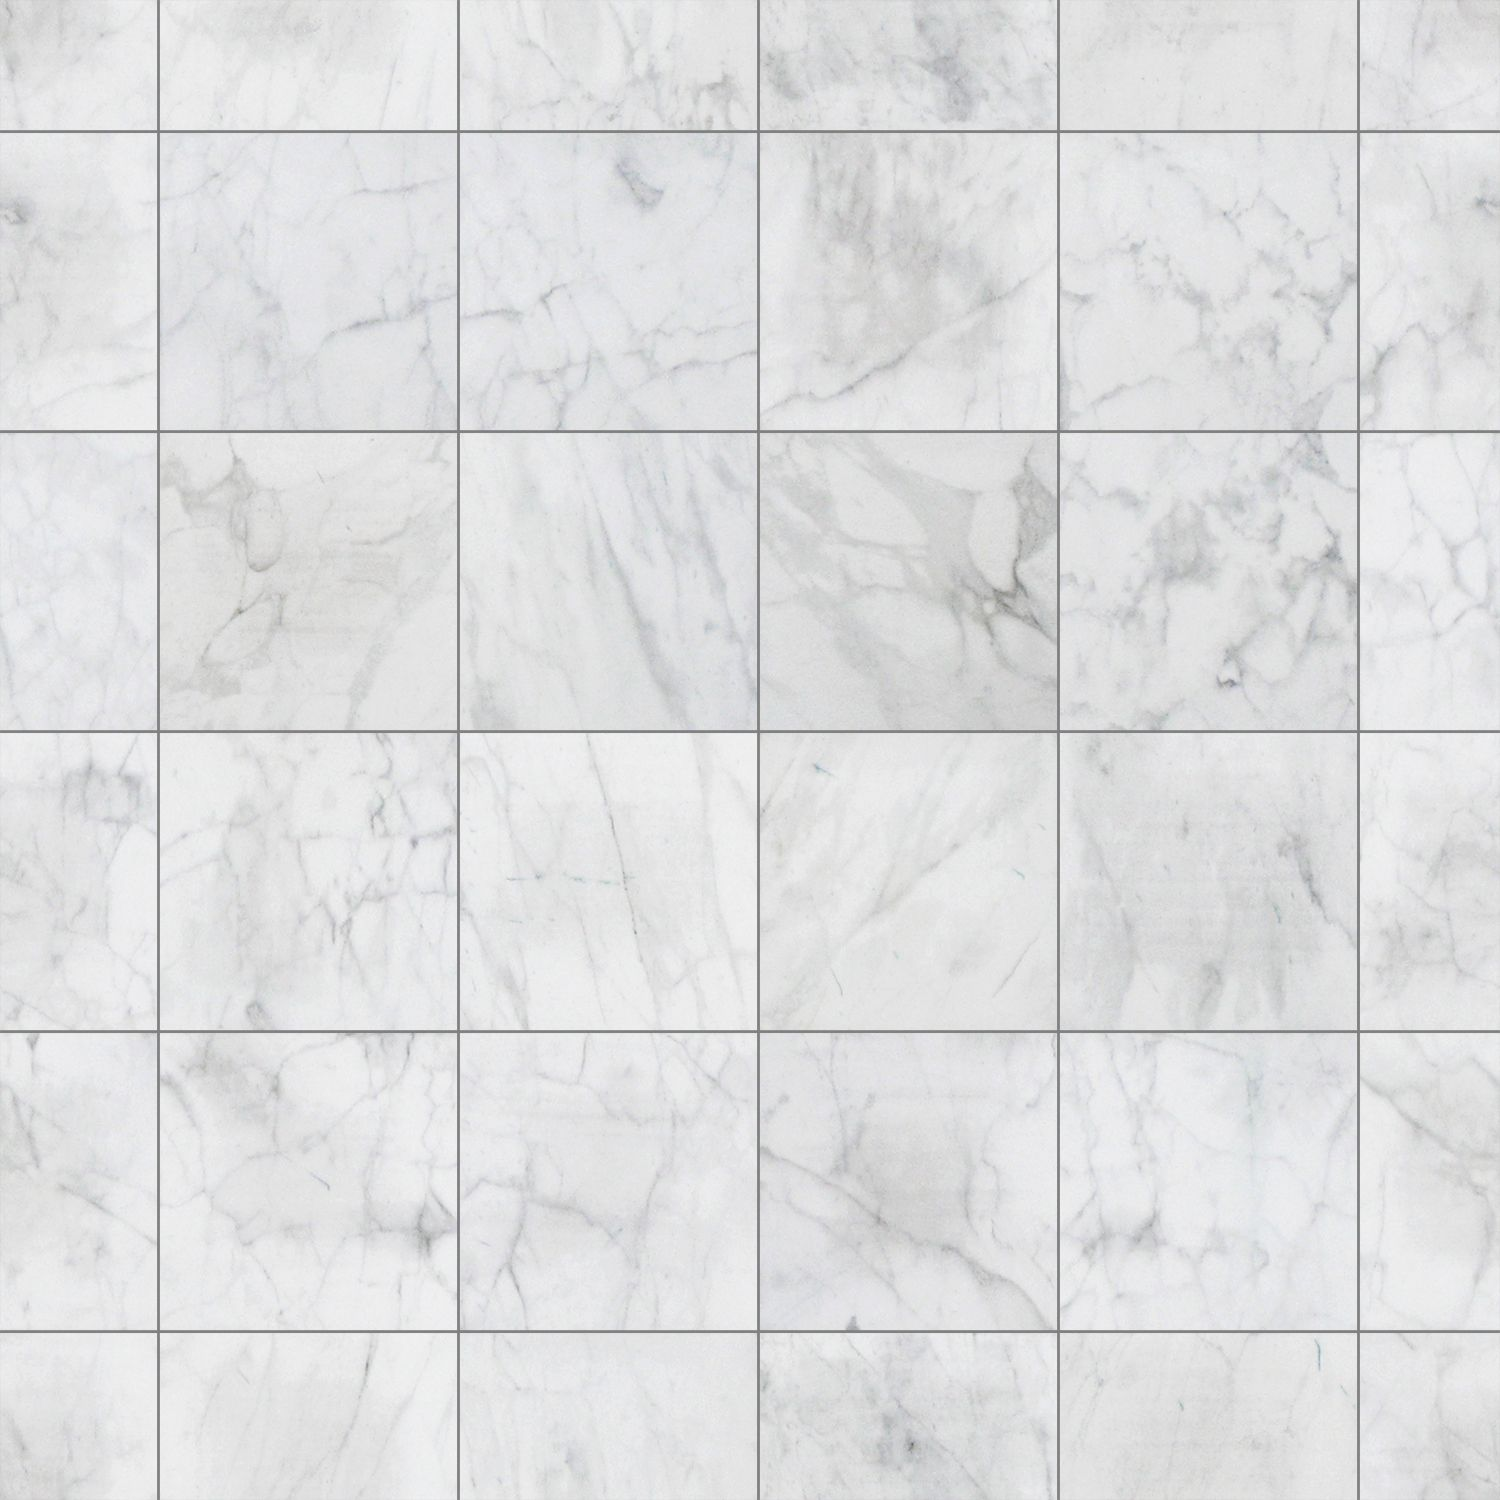 white marble, texture, background, download photo, white marble ...